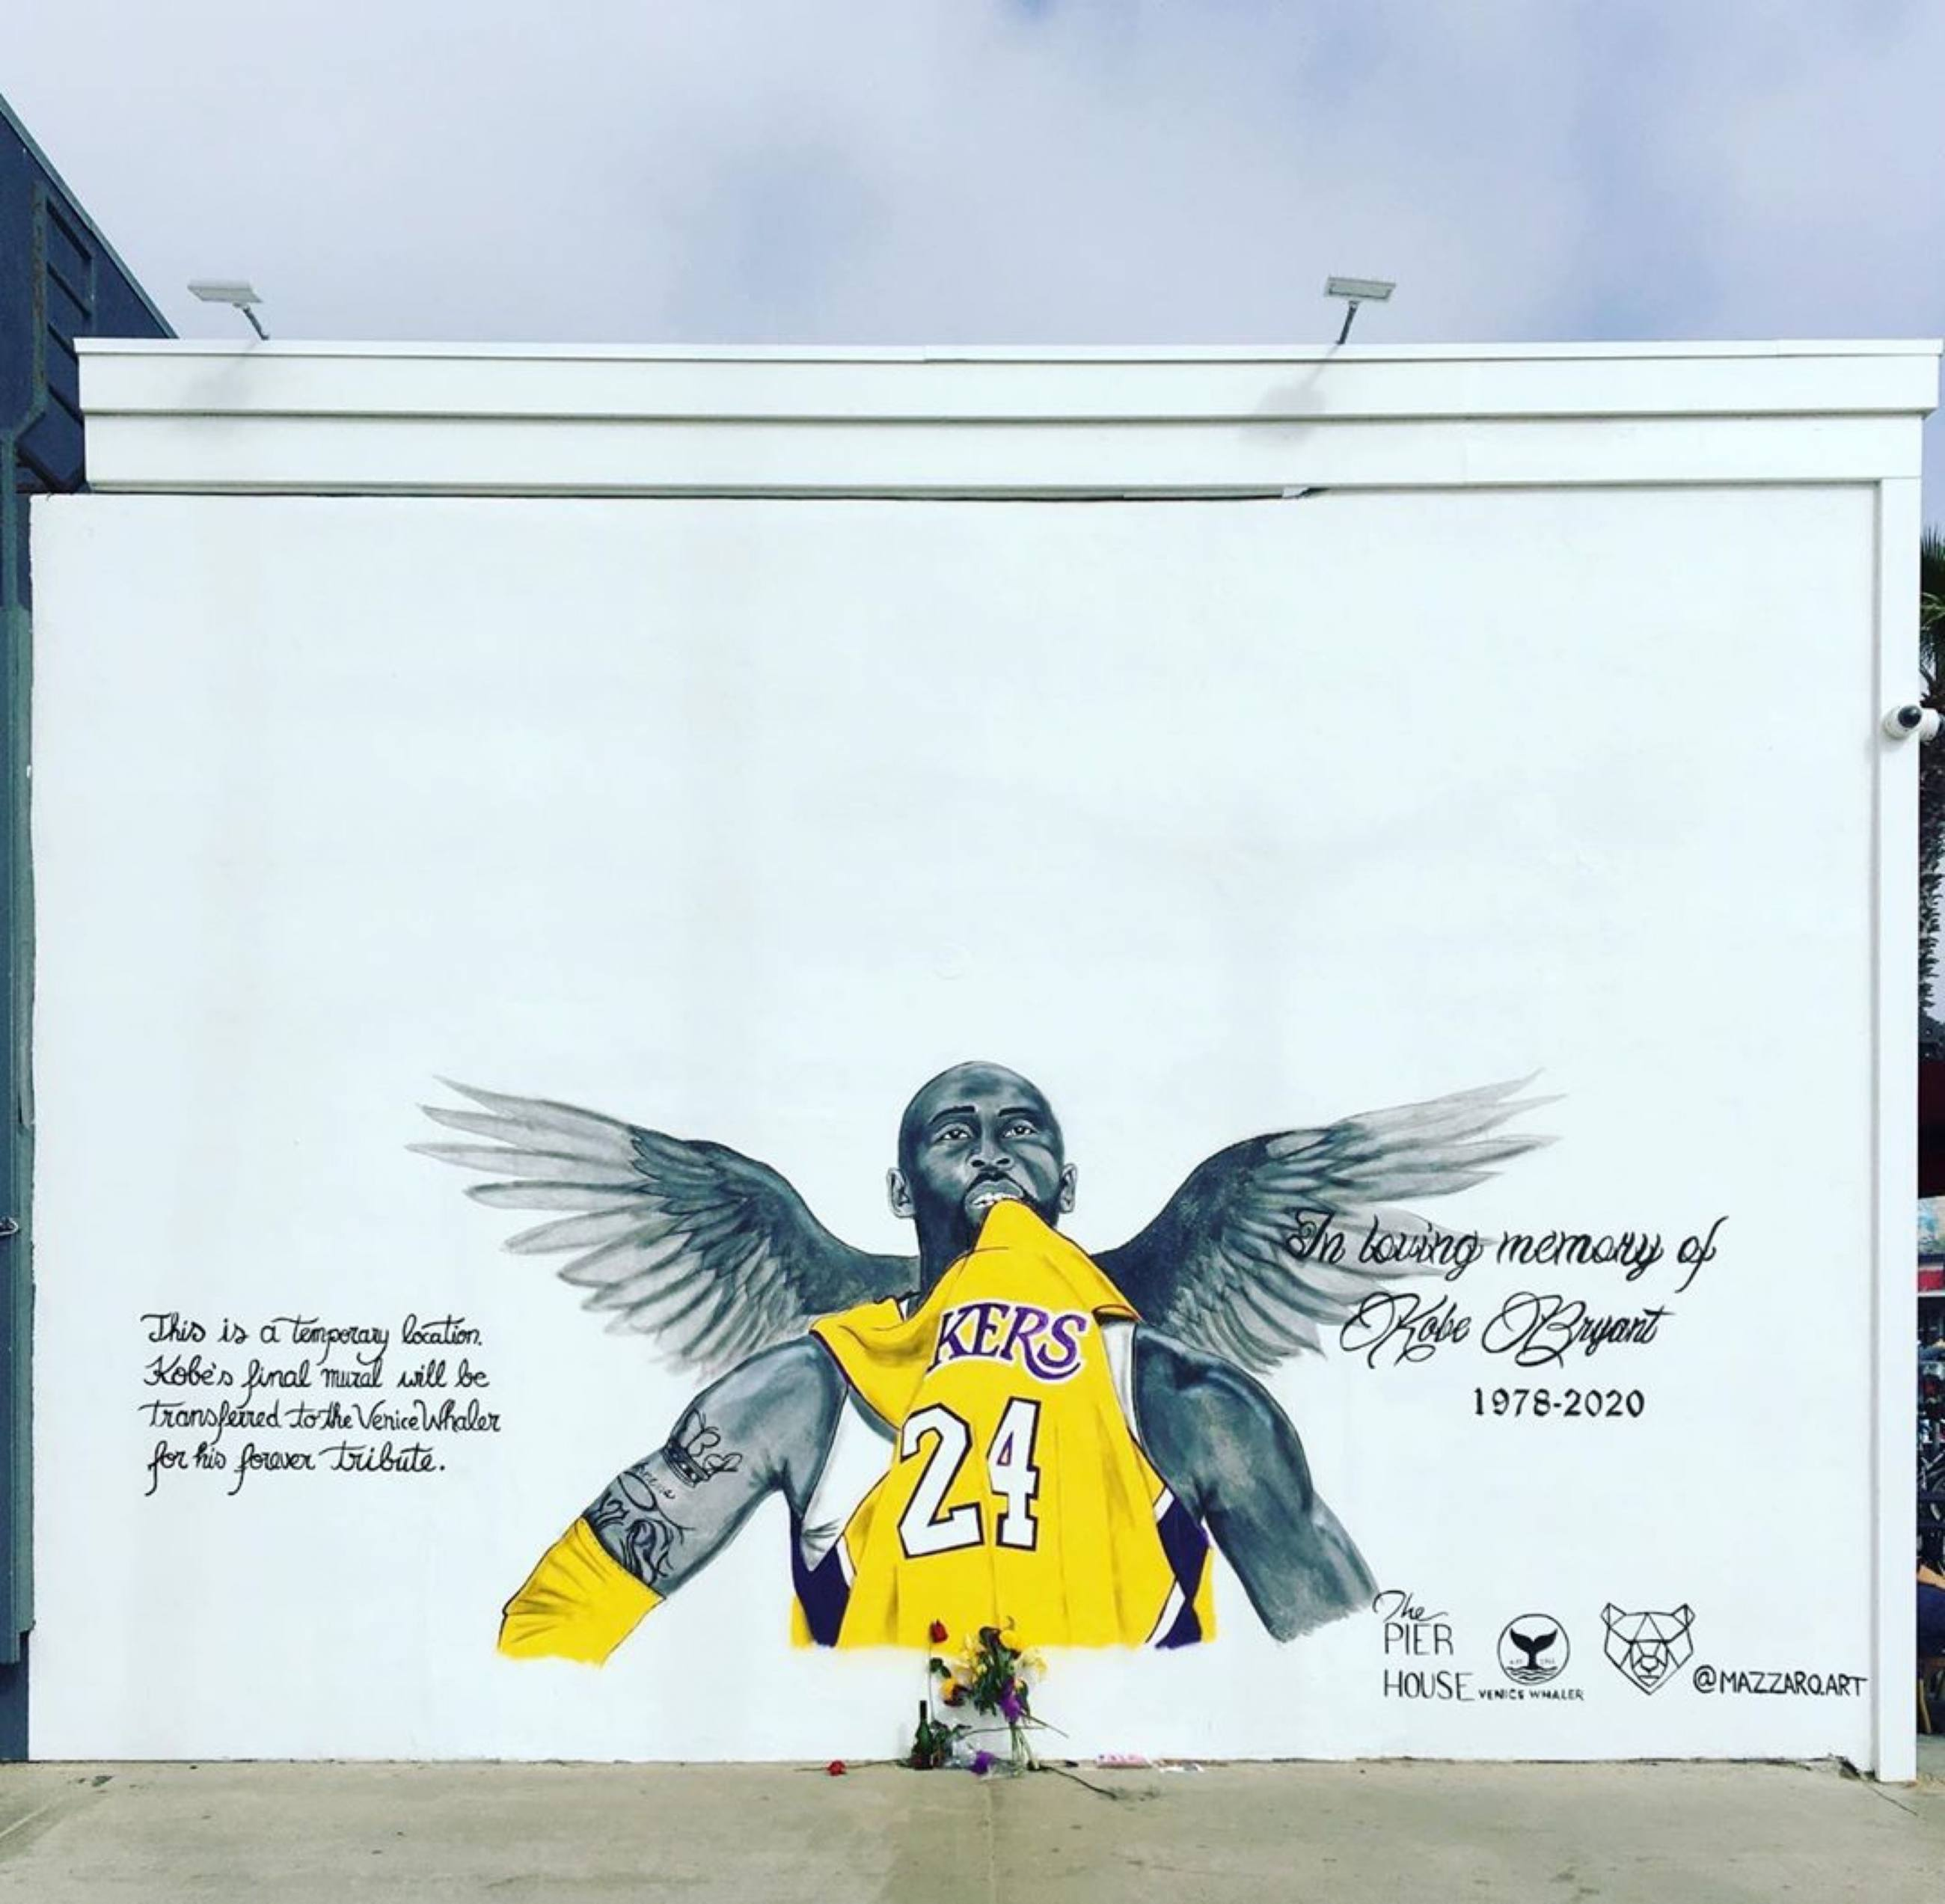 Kobe Bryant mural by Sophie Mazzaro at The Pier House in Venice